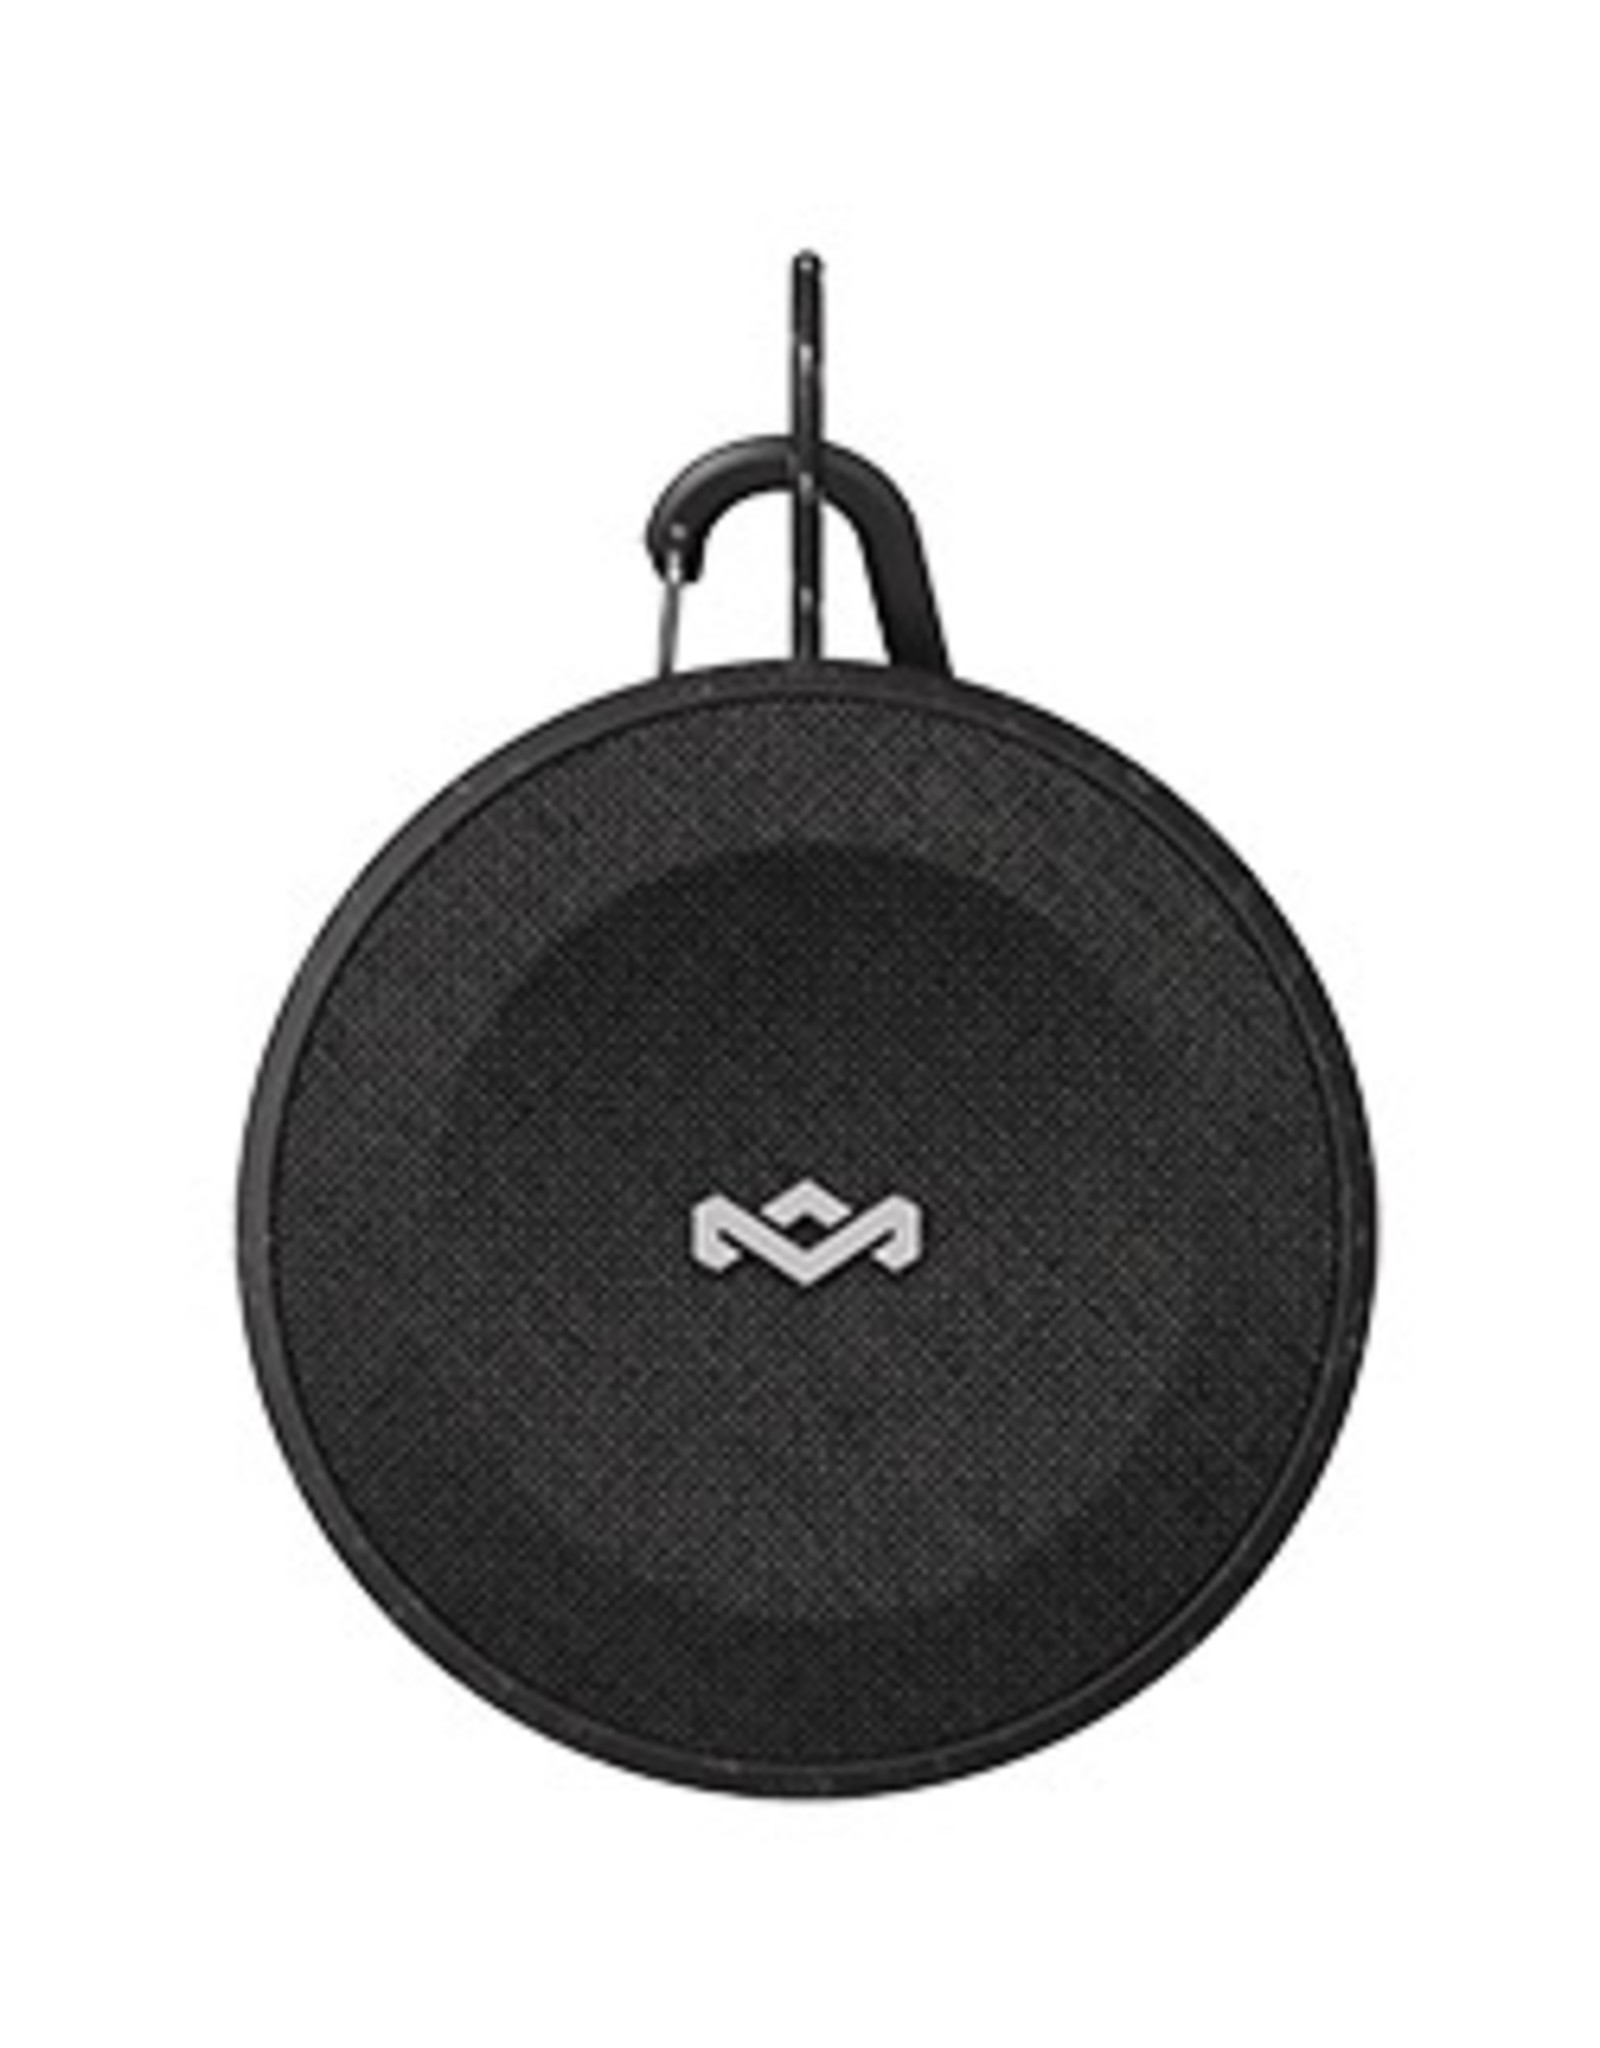 House of Marley House of Marley Black No Bounds Bluetooth Speaker 15-03217